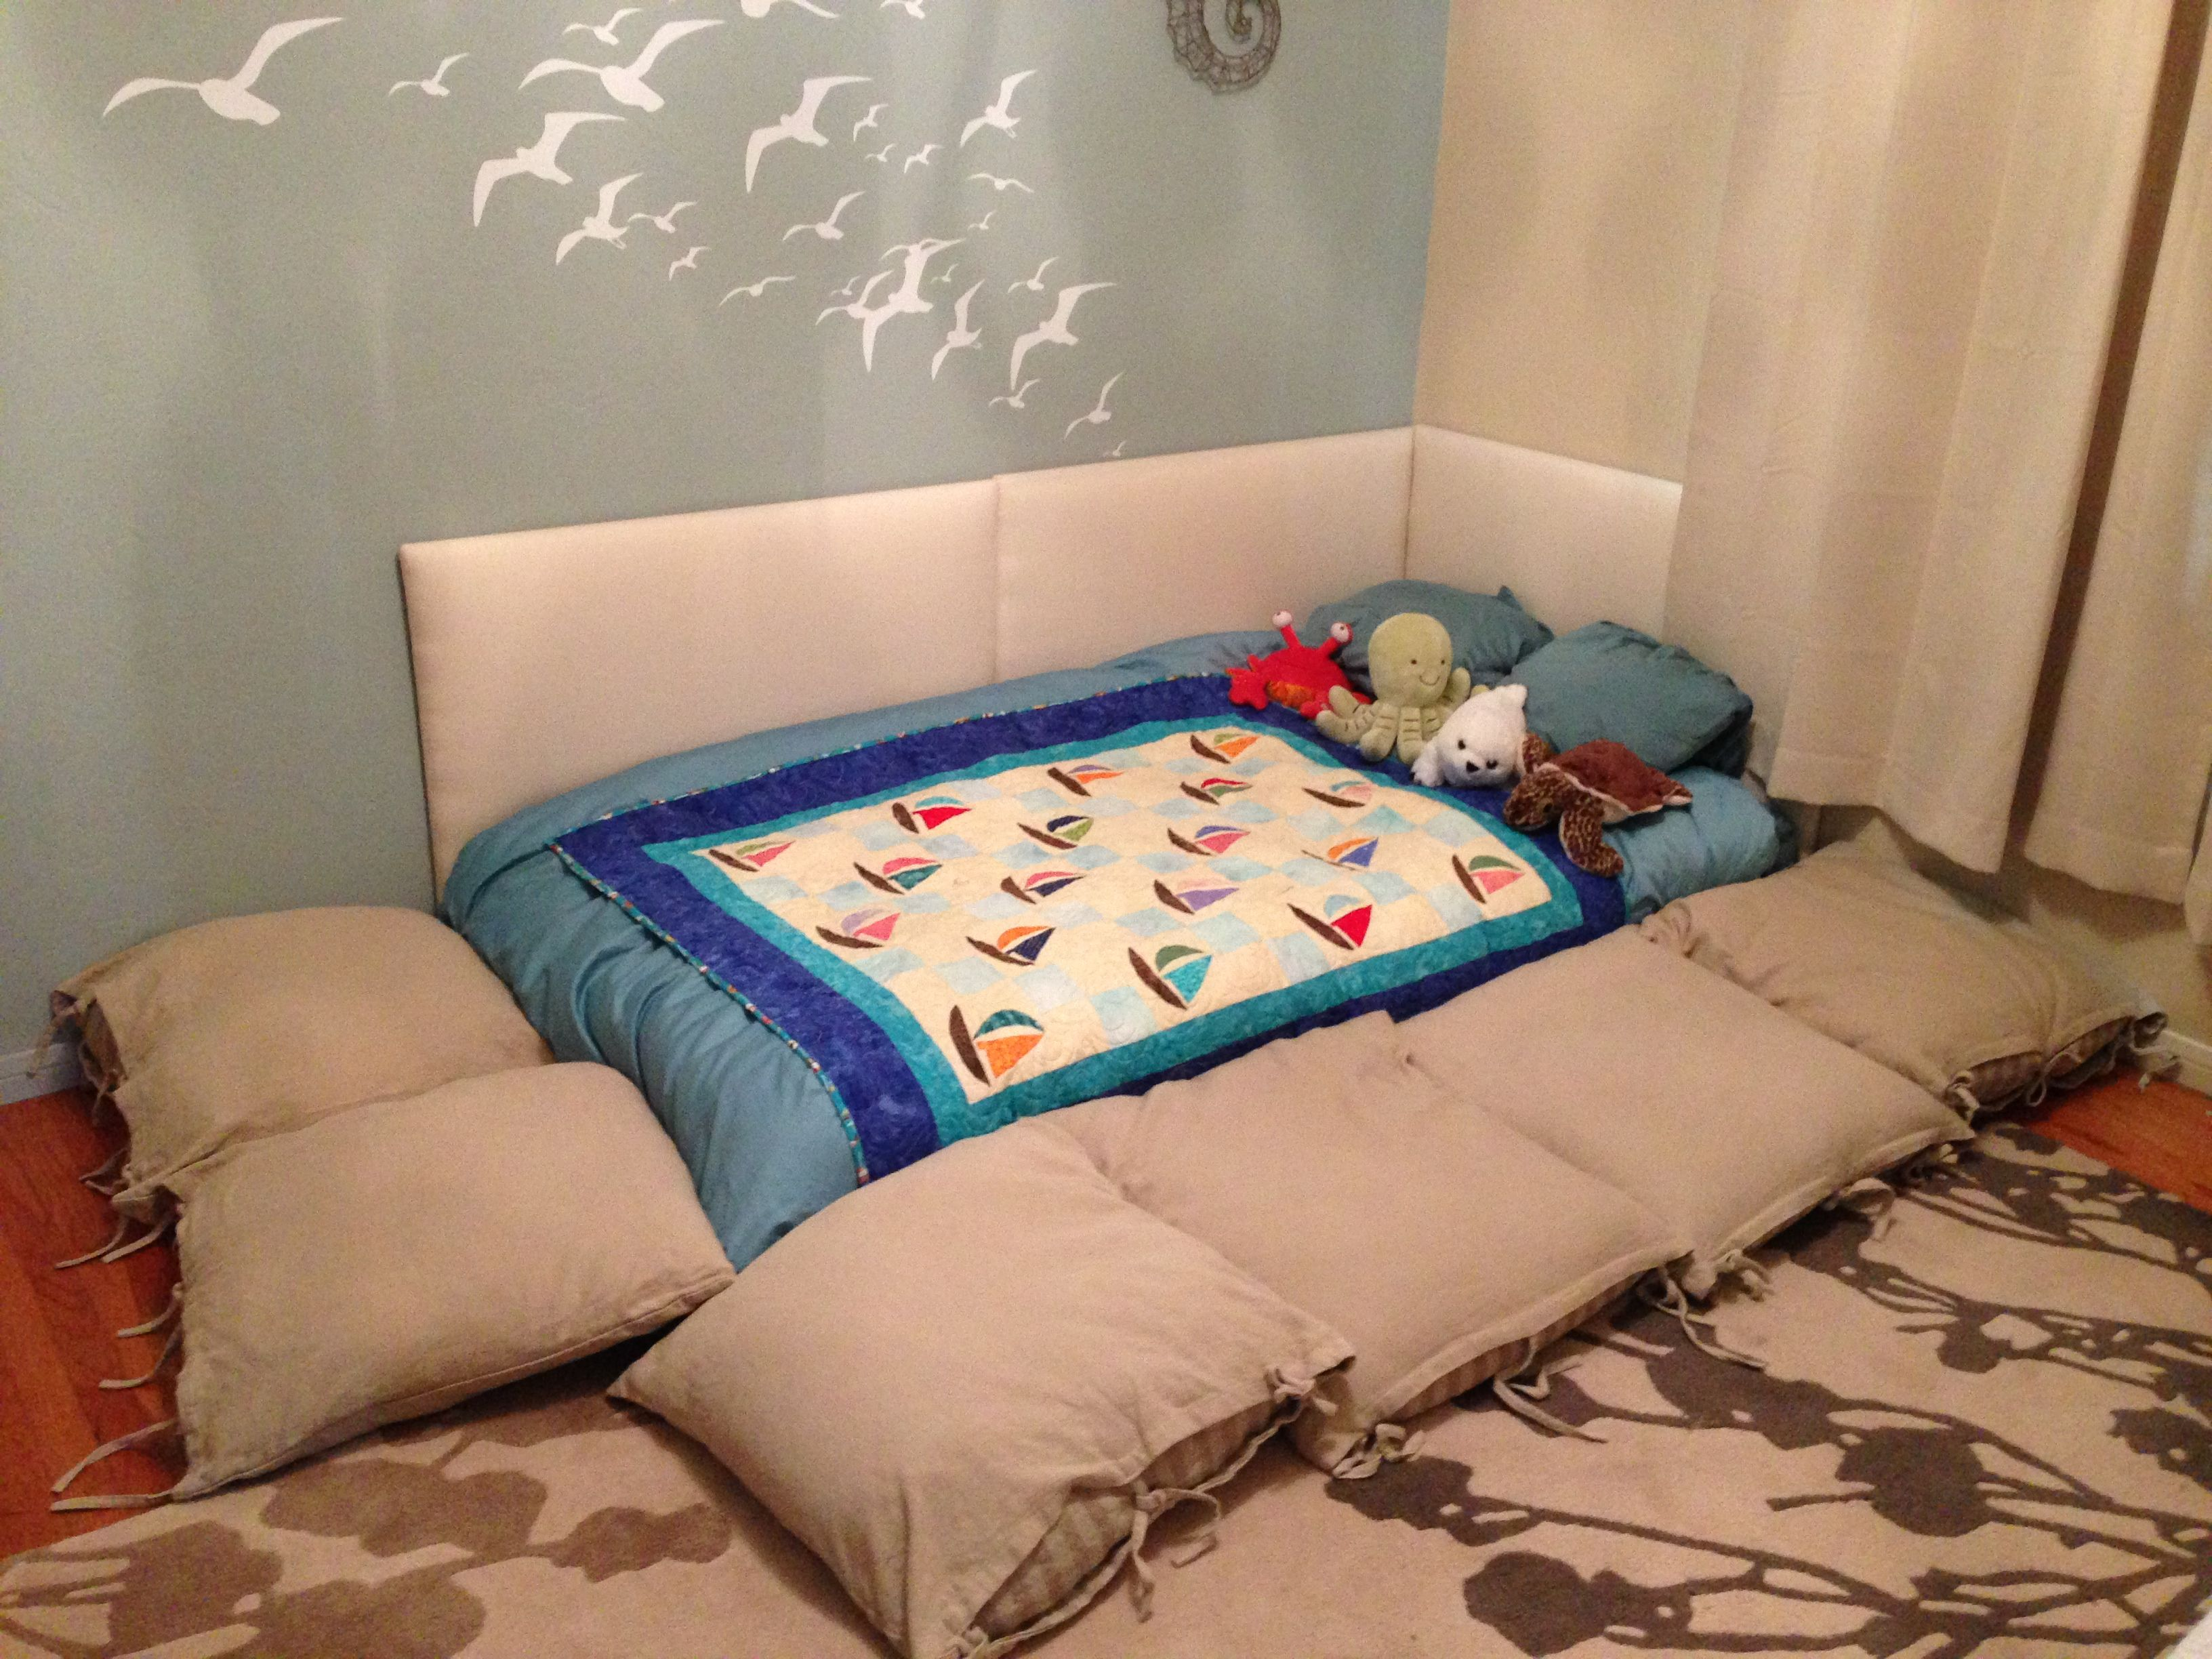 montessori style floor bed kid stuff pinterest. Black Bedroom Furniture Sets. Home Design Ideas